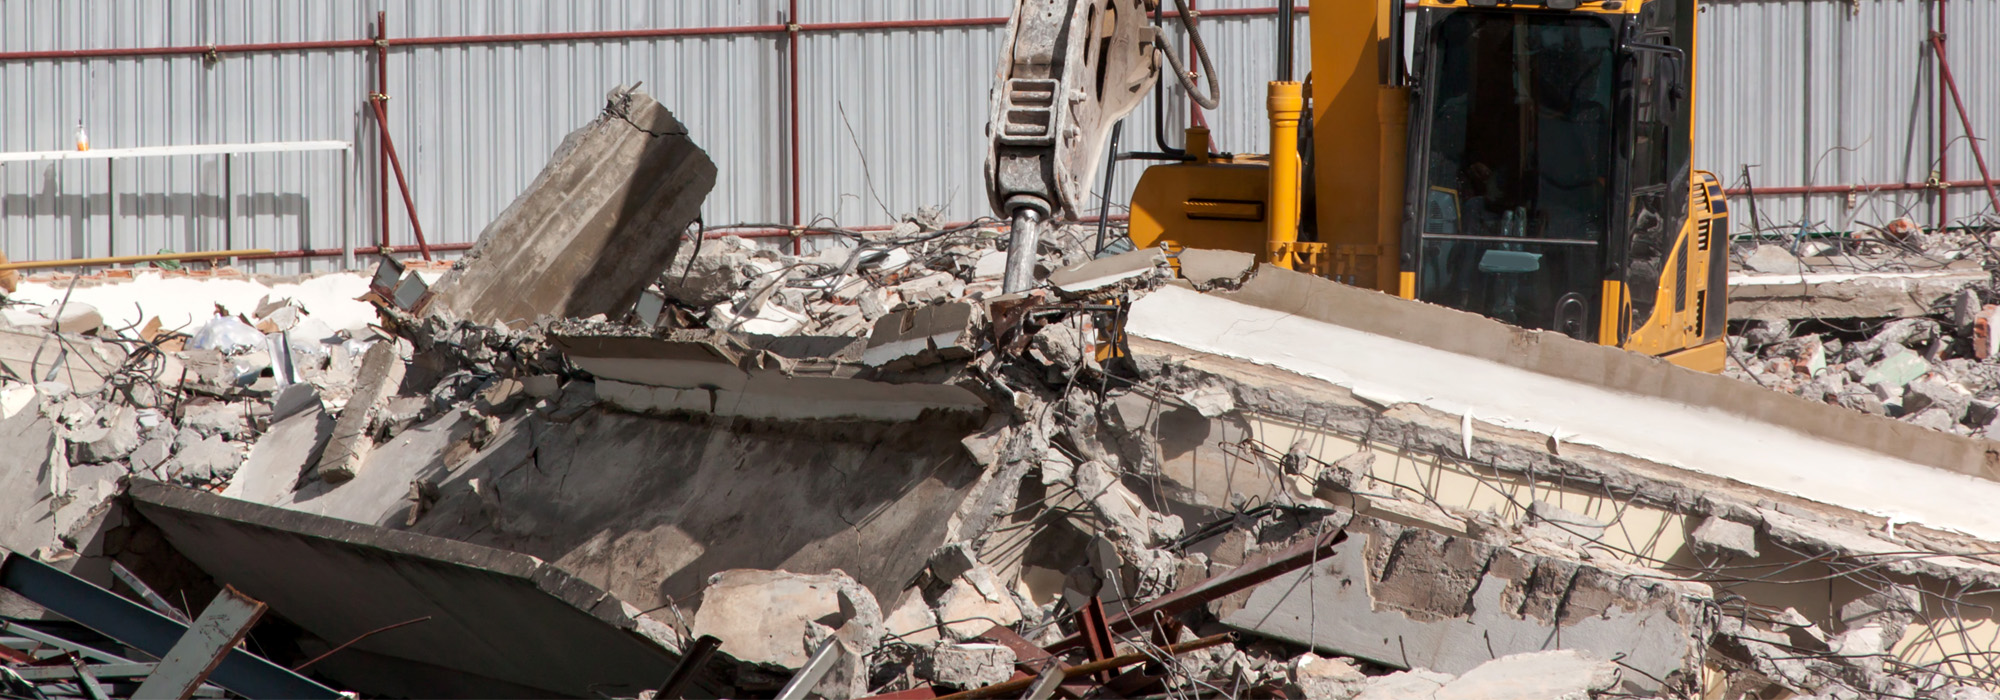 Robotic Demolition Brokk Demolition West Bridgewater Ma